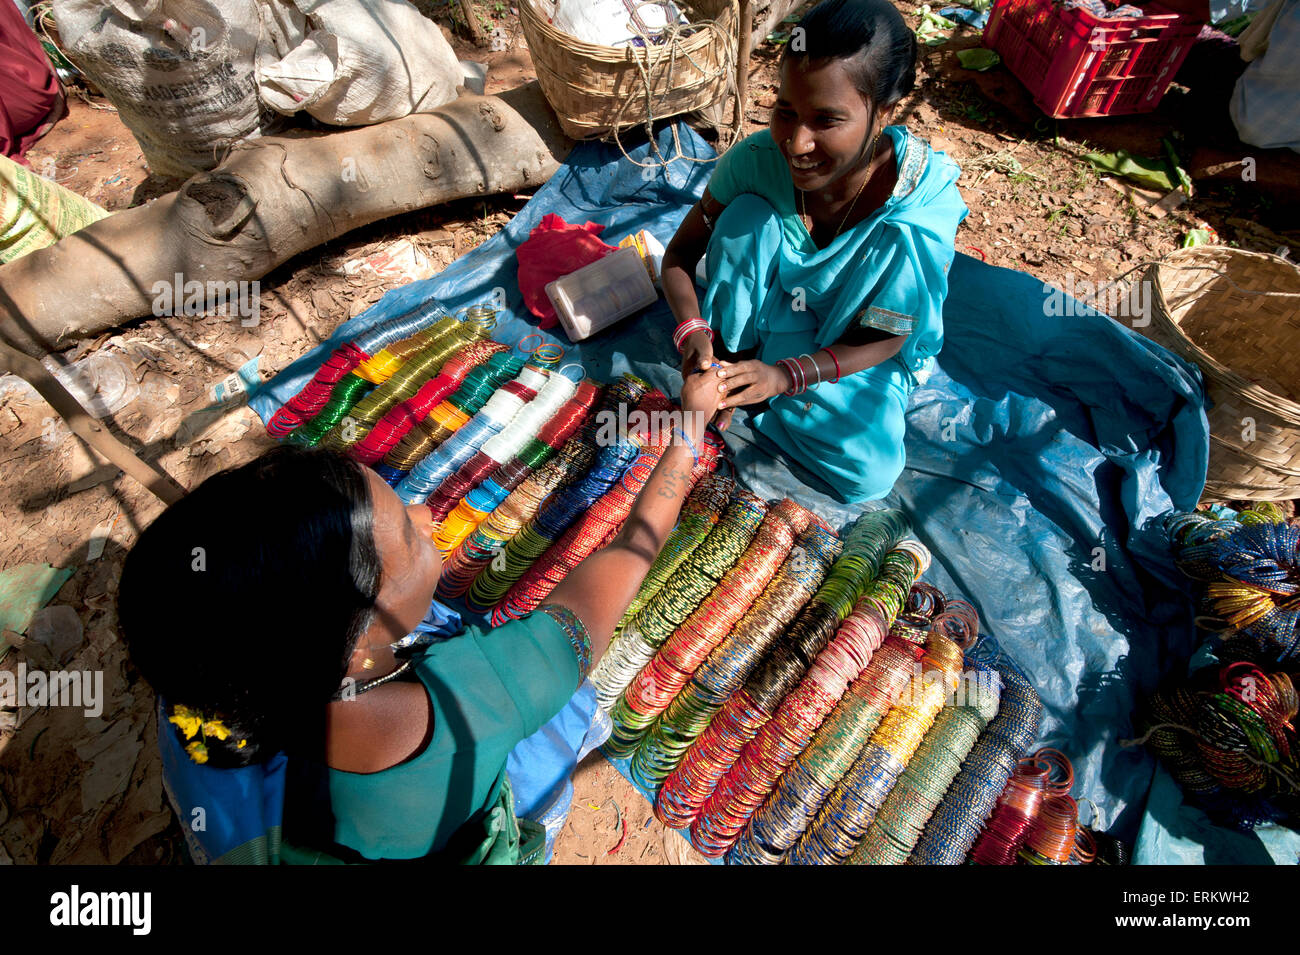 Young woman in turquoise sari selling bangles in Mali weekly tribal market, Guneipada, Koraput district, Orissa - Stock Image